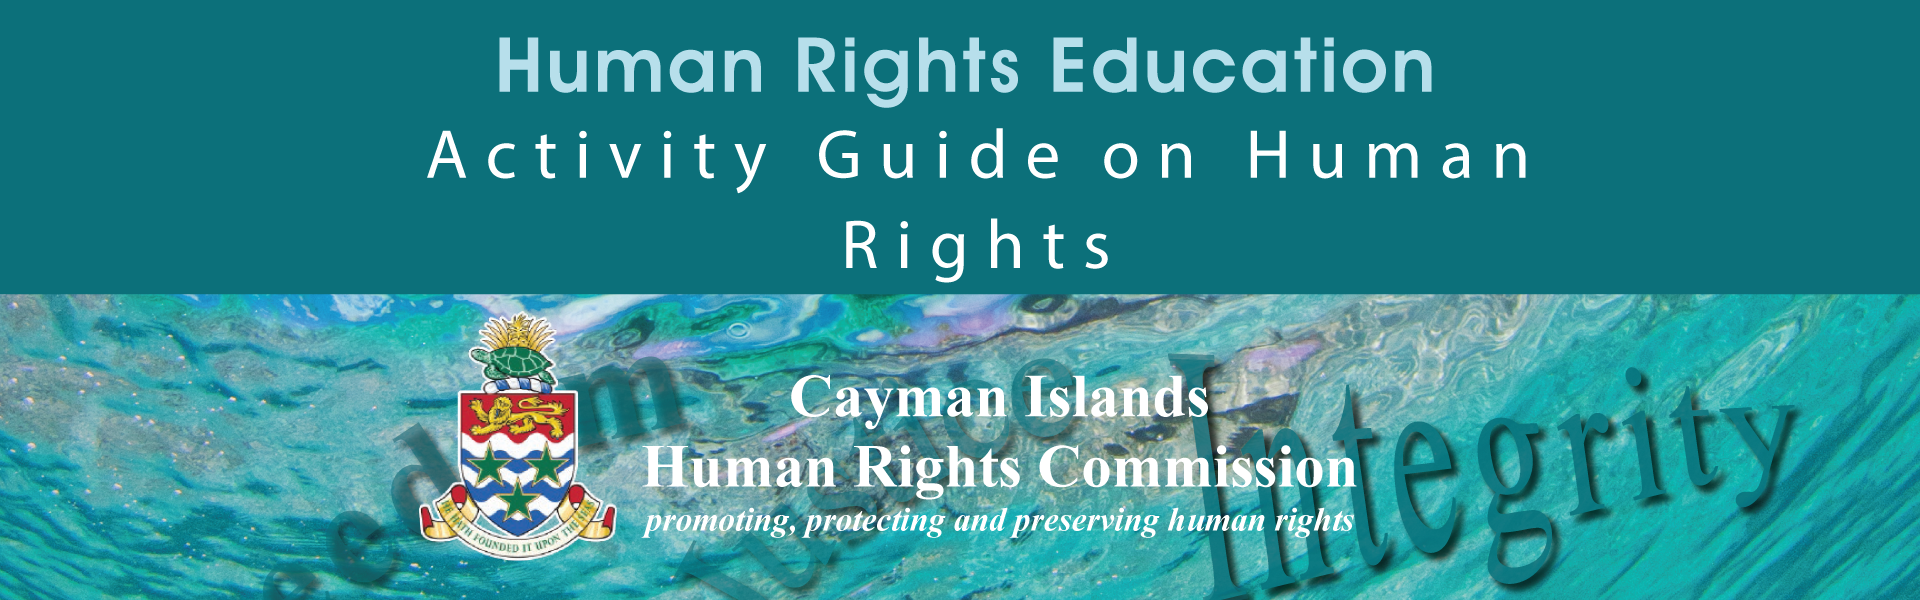 The Teacher's Human Rights Activity Guide